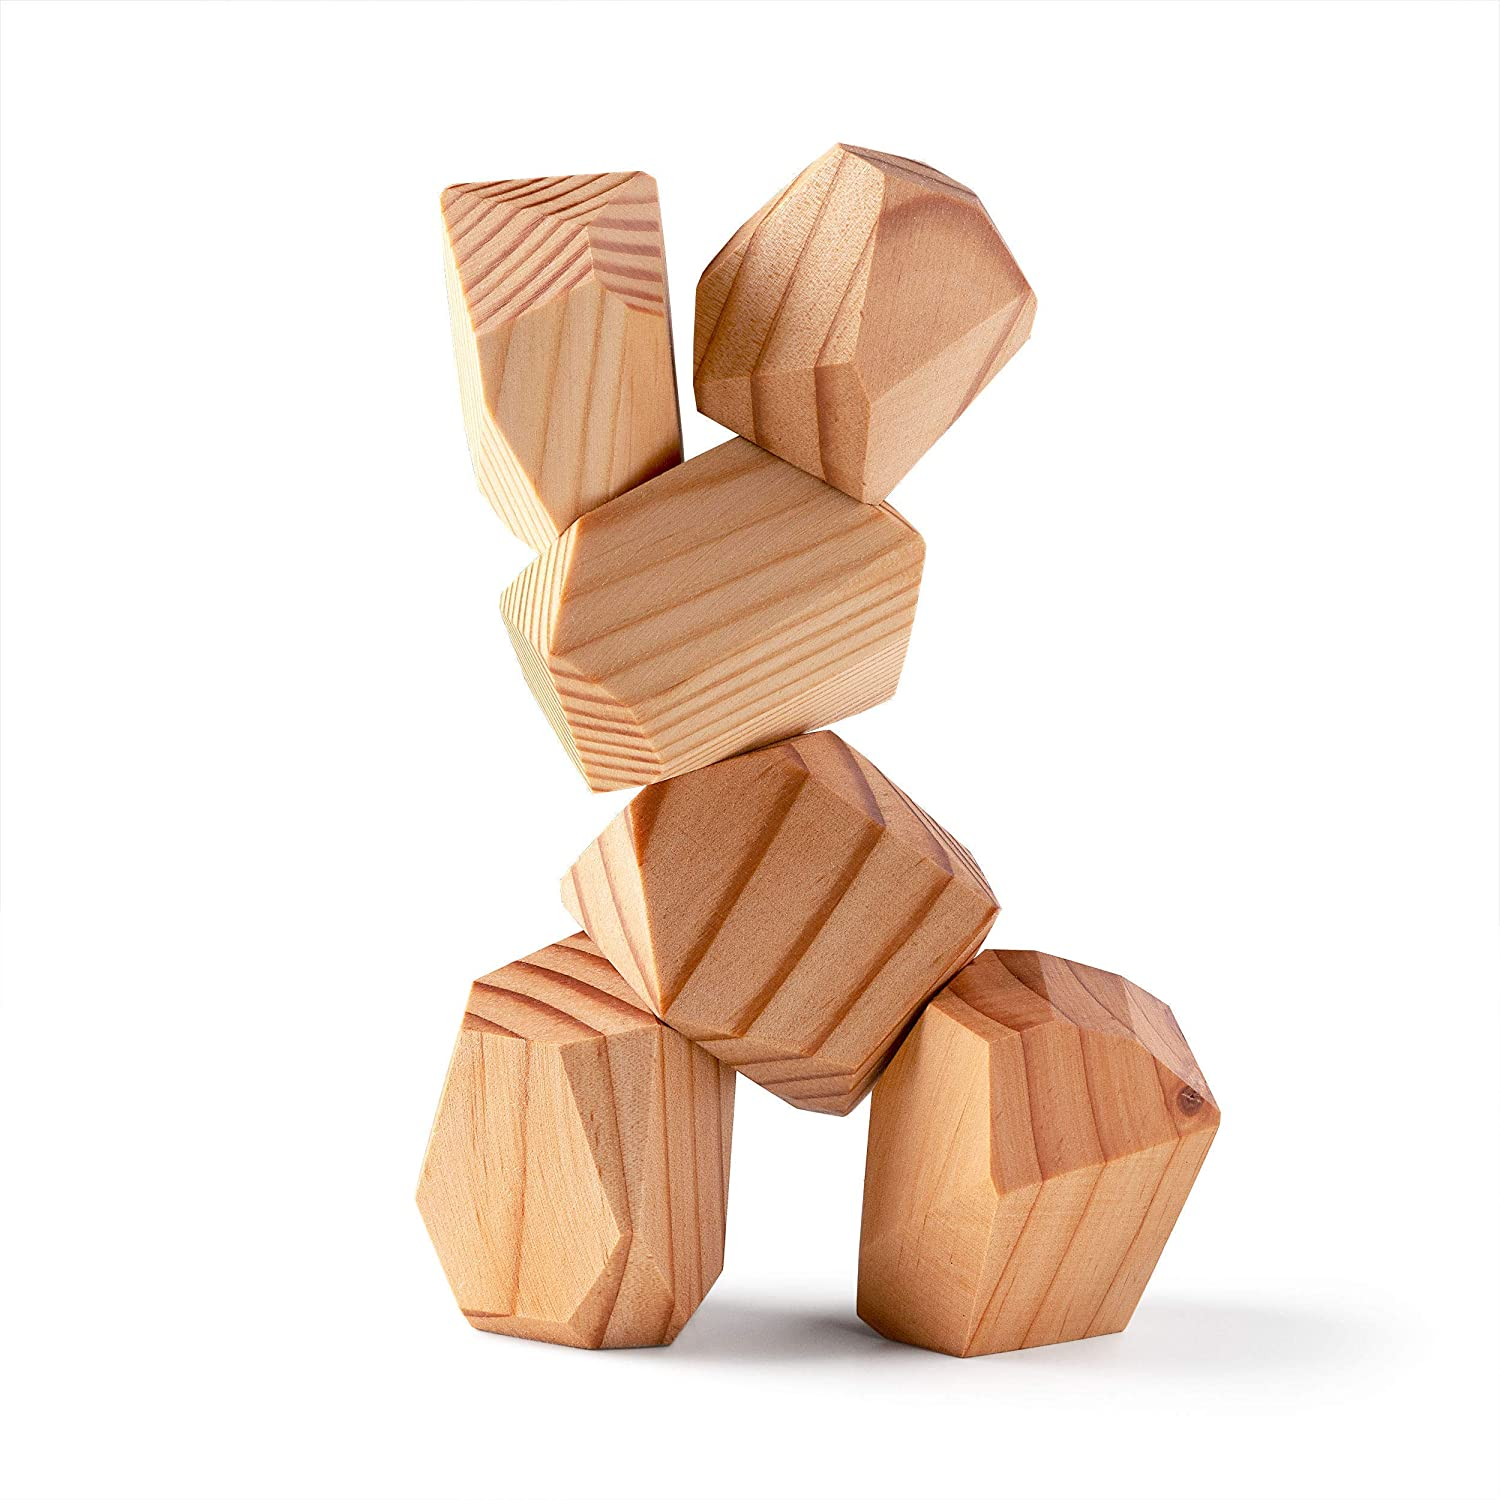 PERCHED Natural Stacking Rocks, Wooden Blocks, Montessori Puzzle Game, Open Ended Toys, Wood Balancing Stones Set (6 Pc)